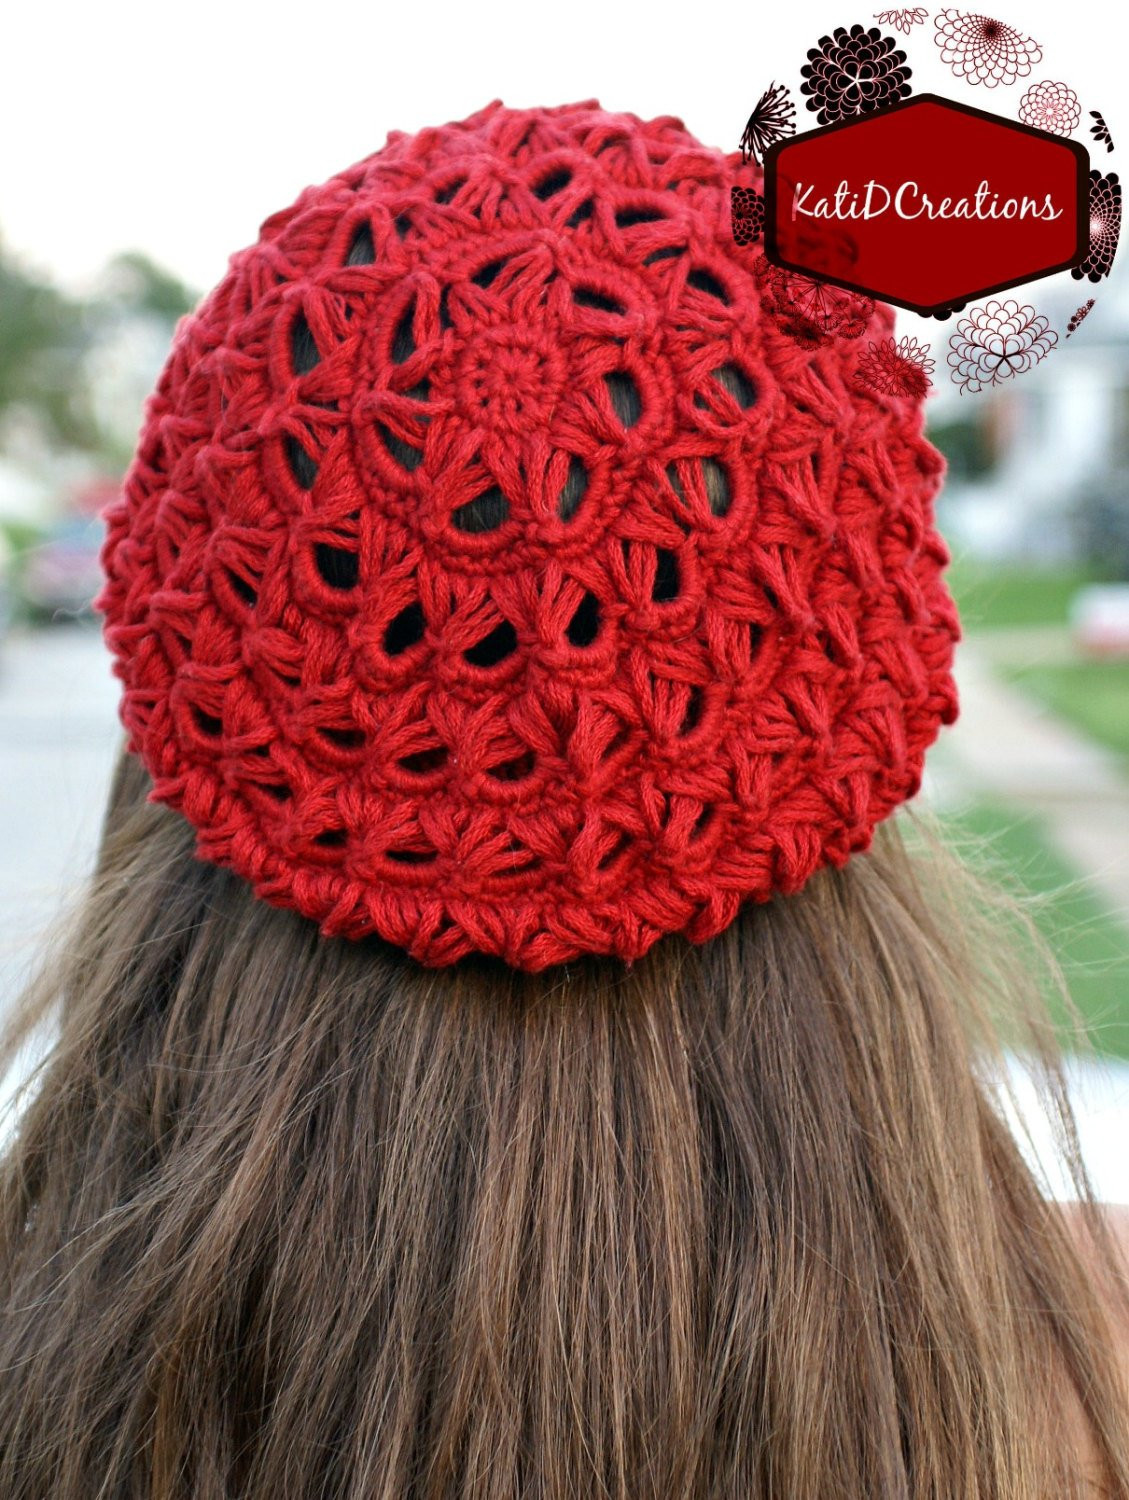 Fresh Broomstick Lace Crochet Slouchy Hat Beret Broomstick Lace Free Crochet Slouchy Hat Patterns Of Amazing 50 Pictures Free Crochet Slouchy Hat Patterns